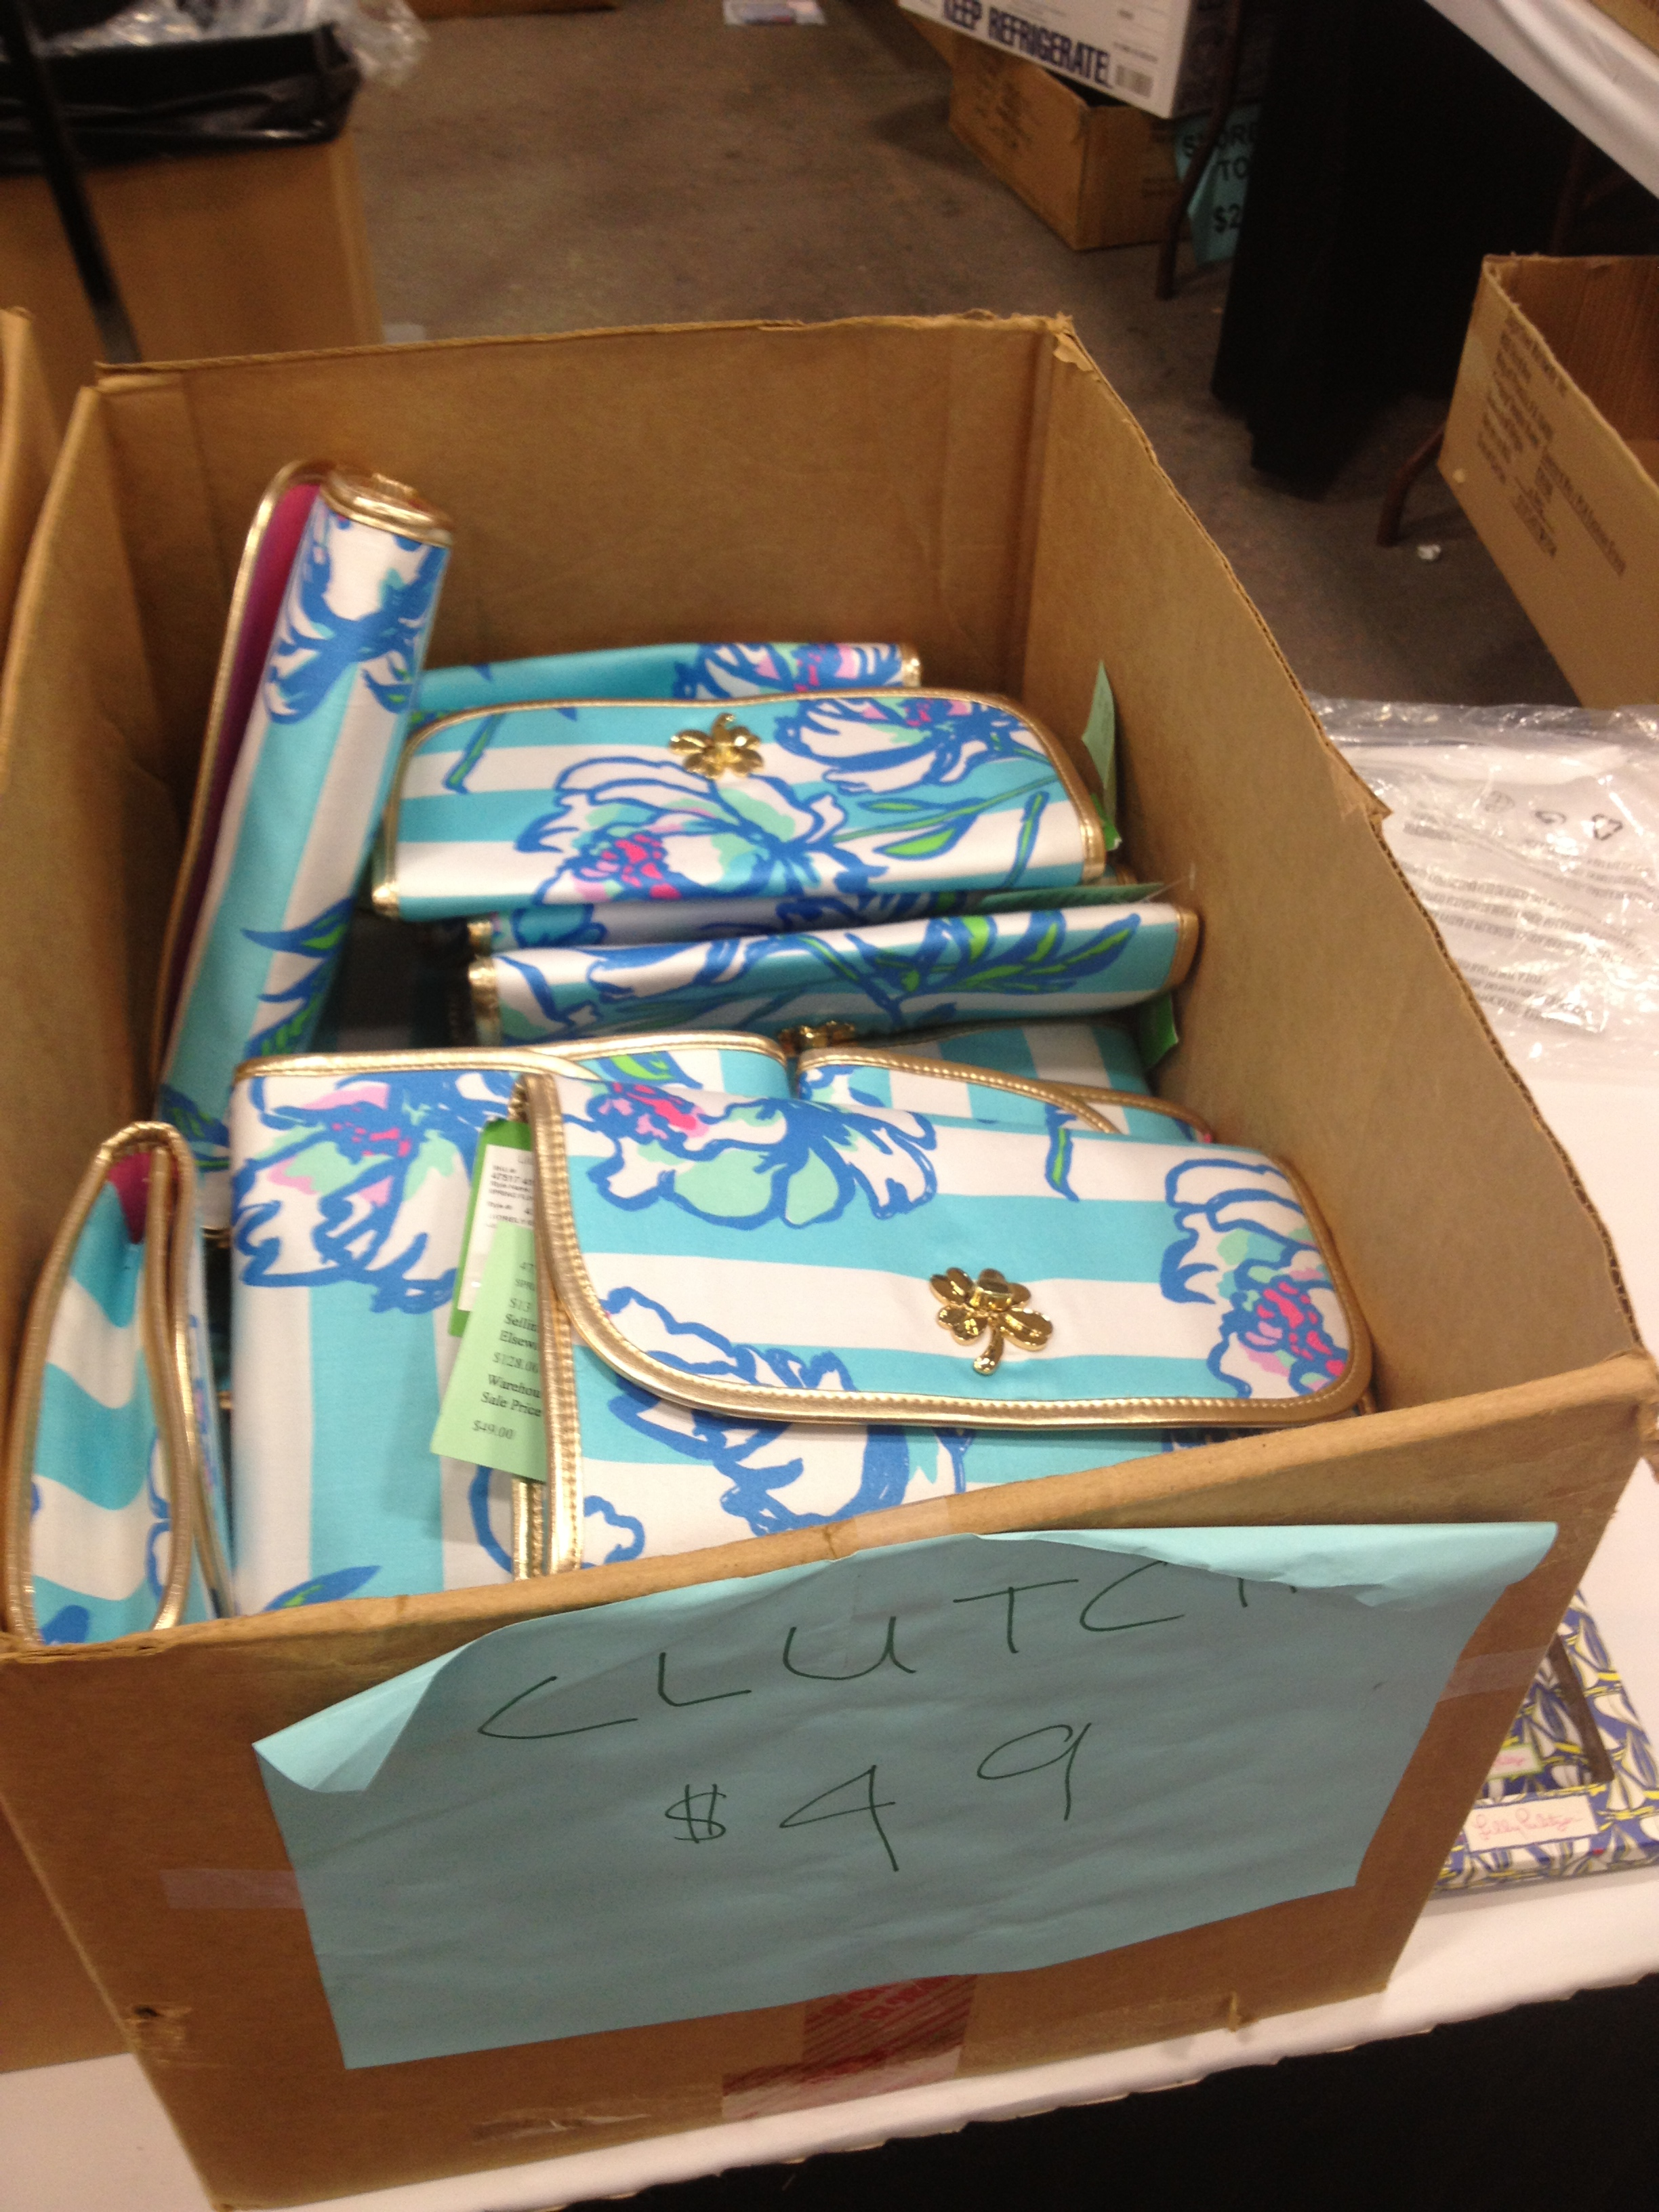 Lilly Pulitzer Furniture Sale #28: Lilly Pulitzer Warehouse Sale Mint Julep Lilly Pulitzer Warehouse Sale ...